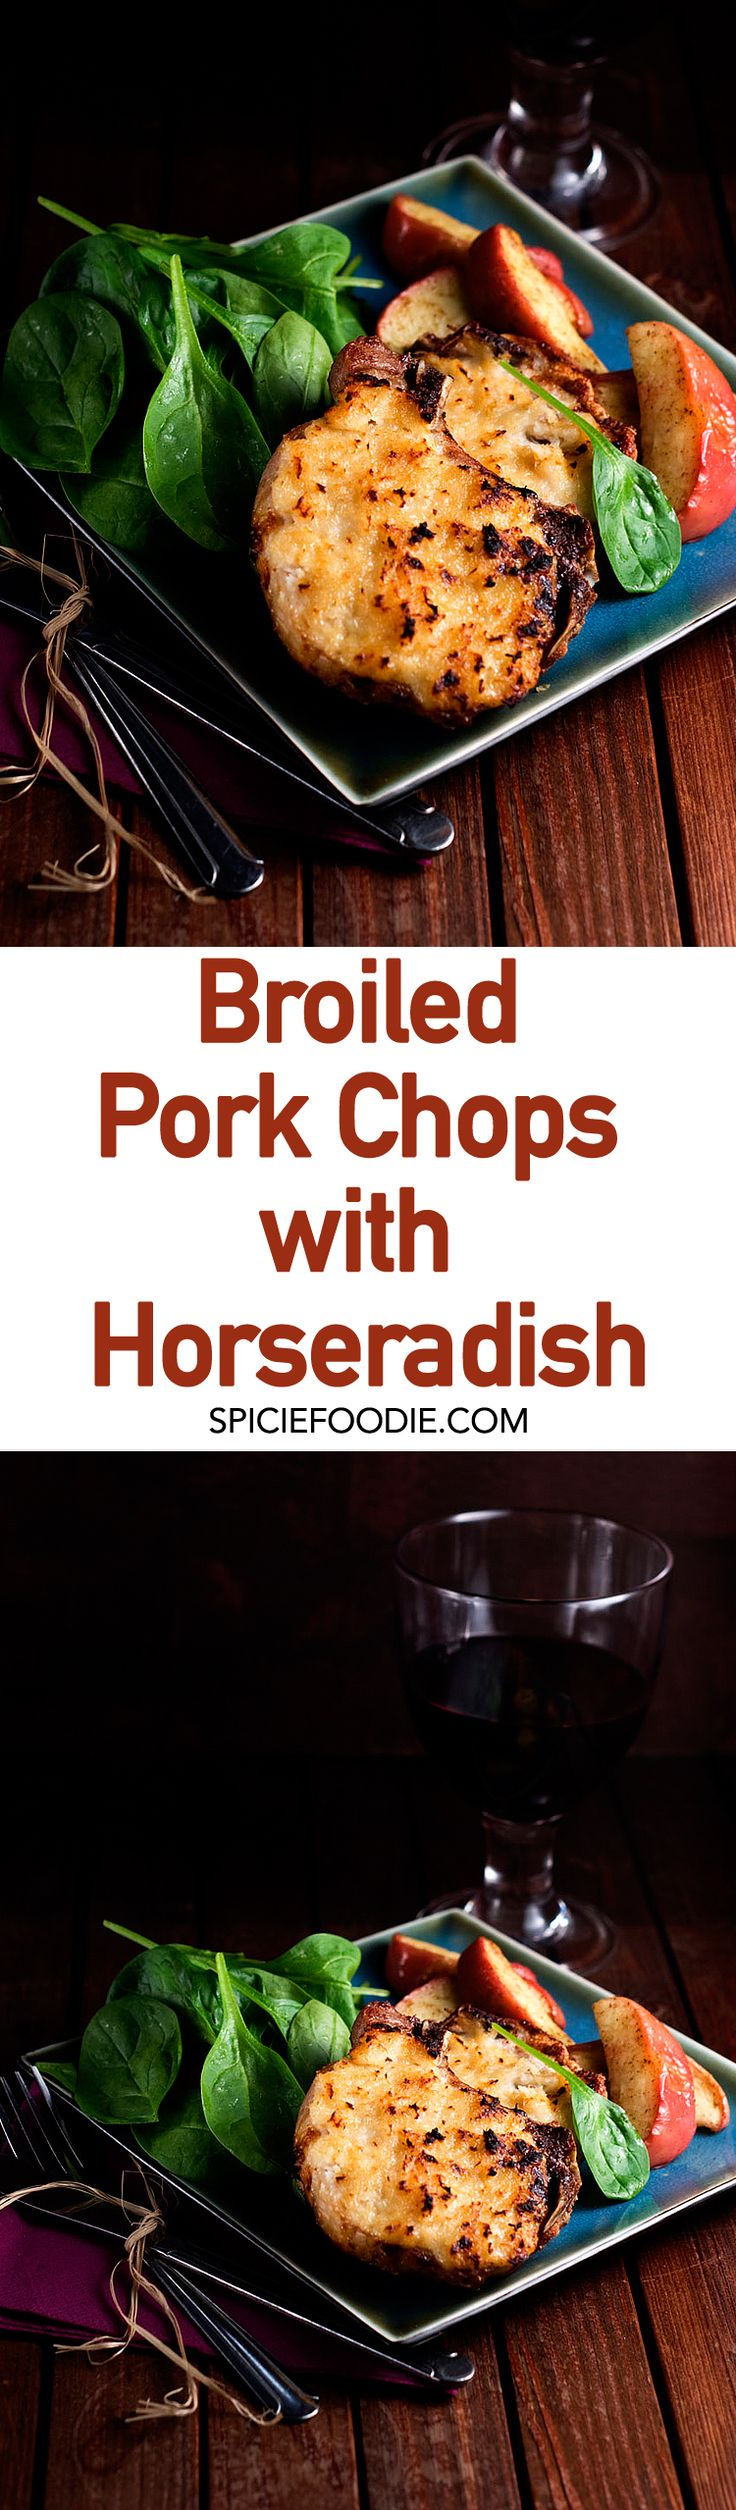 Broiled Pork Chops with Horseradish and Savory Baked Apples | #dinner #dinnerforhim #porkchops #pork